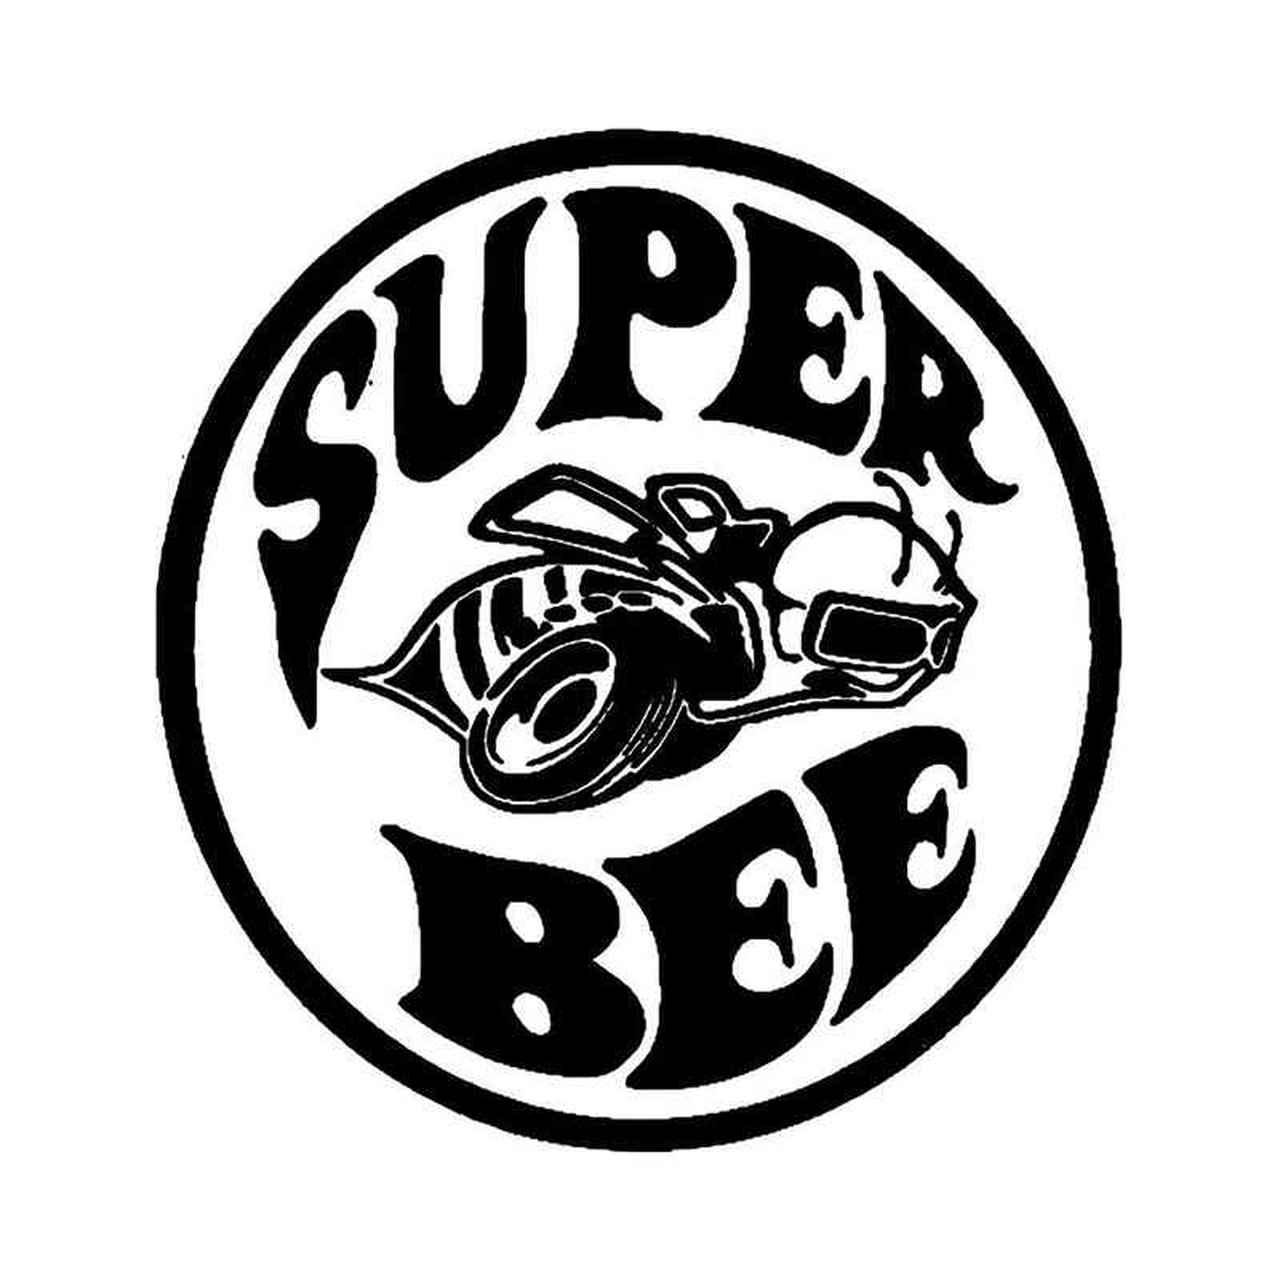 Dodge Super Bee Vinyl Decal Sticker.